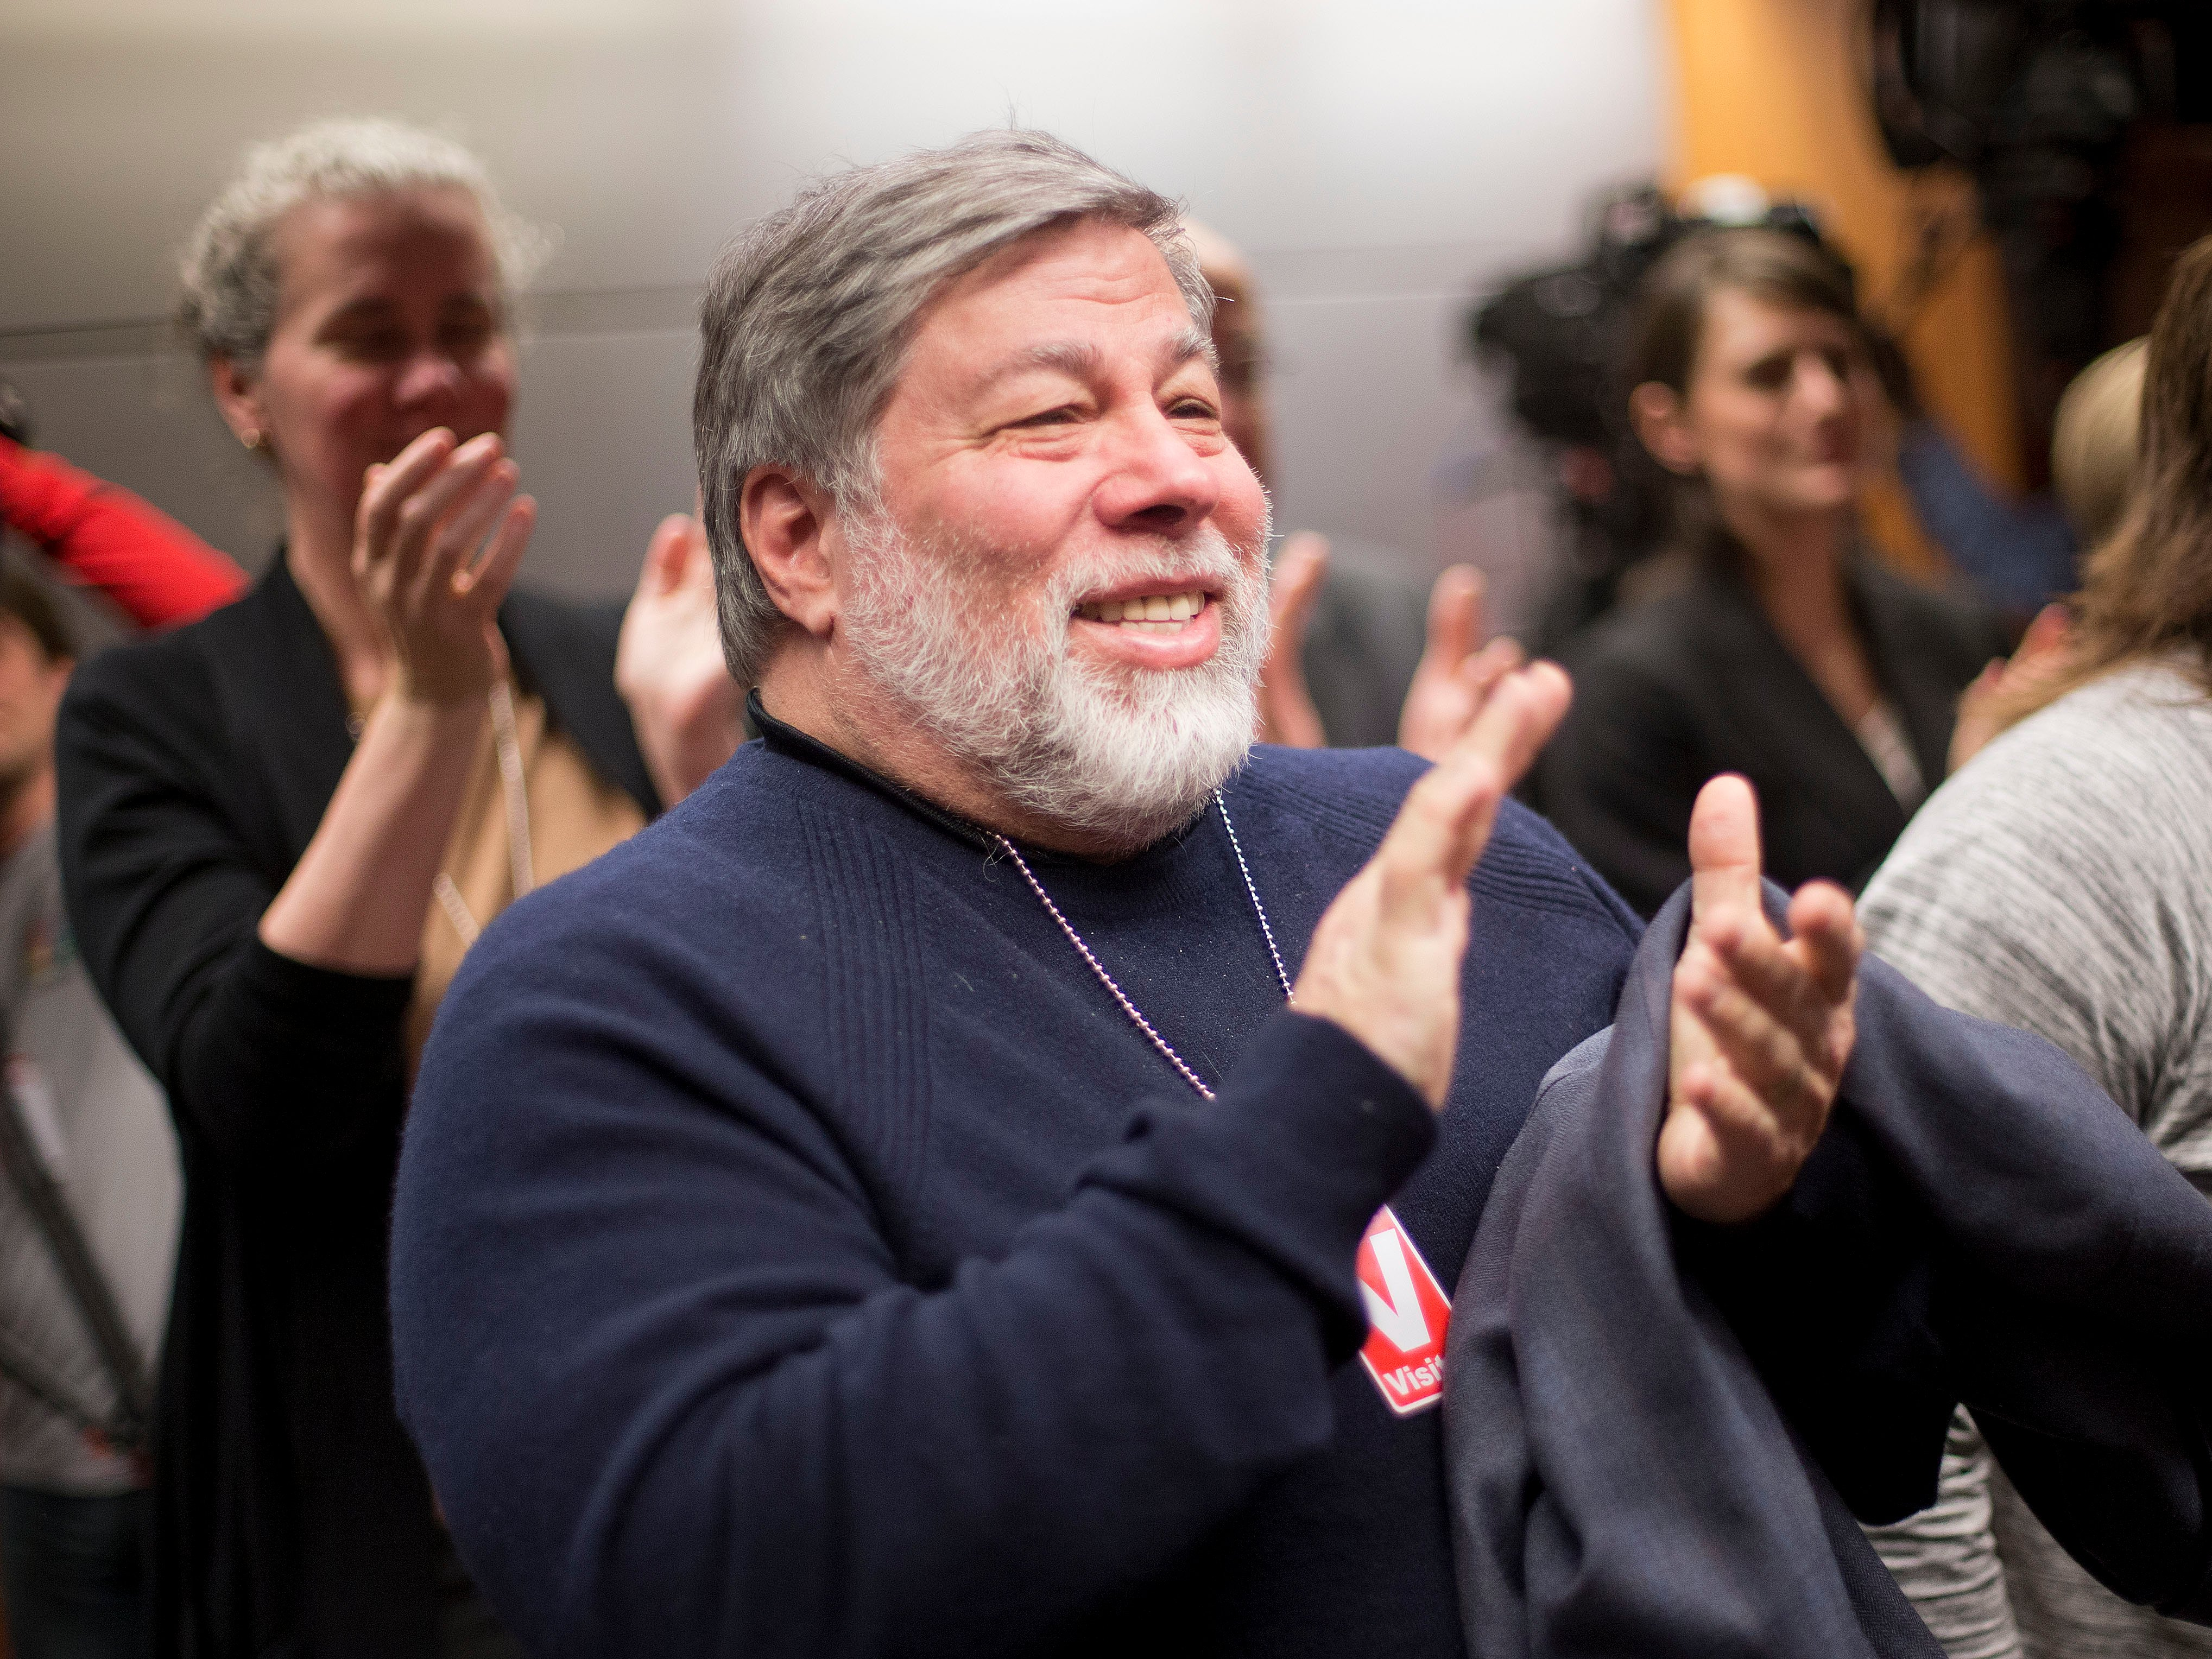 Apple founder Steve Wozniak thinks Amazon's new device is the next big platform